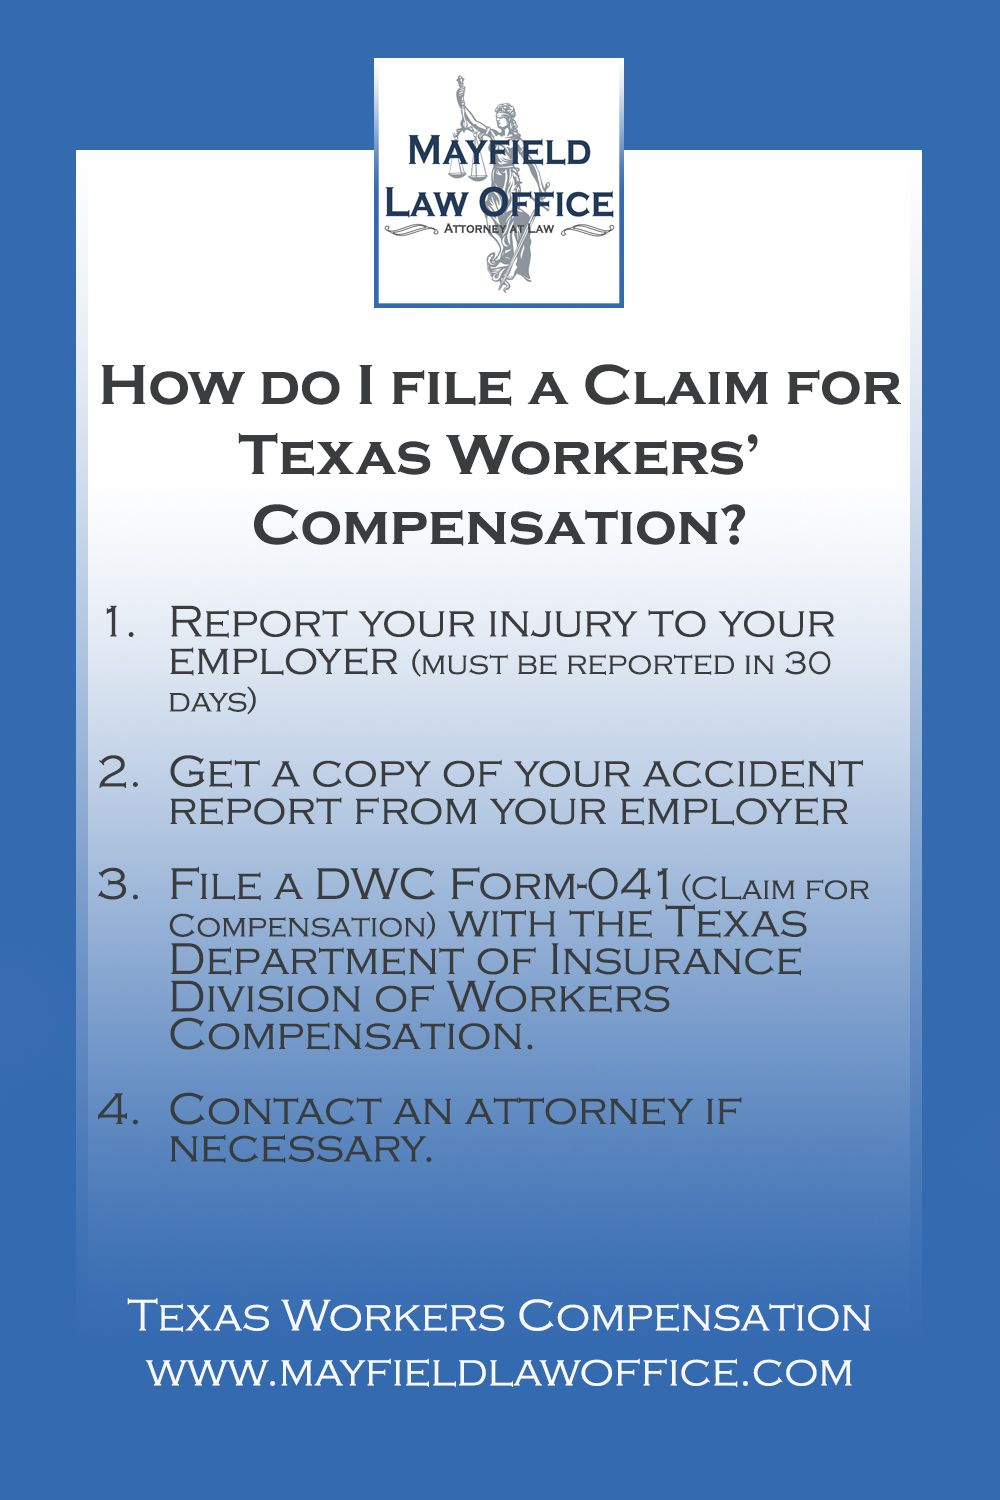 Filing a texas workers compensation claim with images